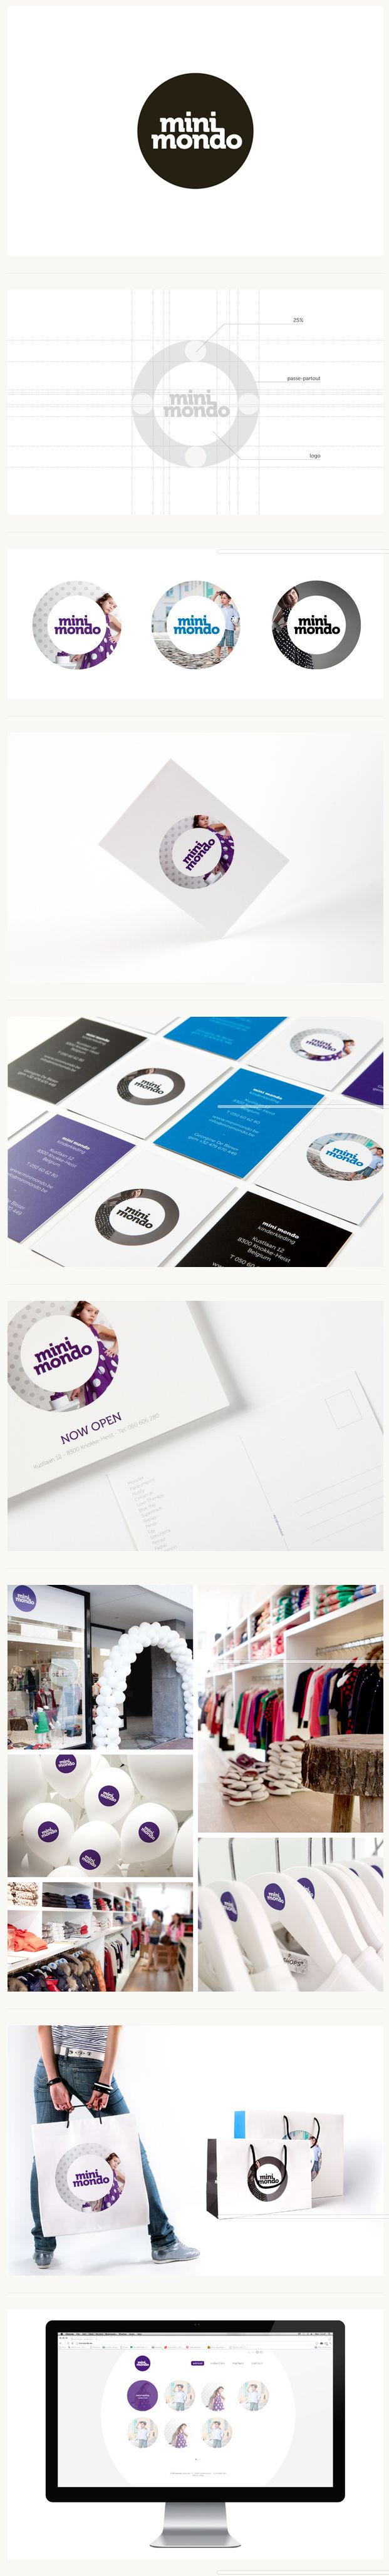 Mini mondo #identity #packaging #branding PD